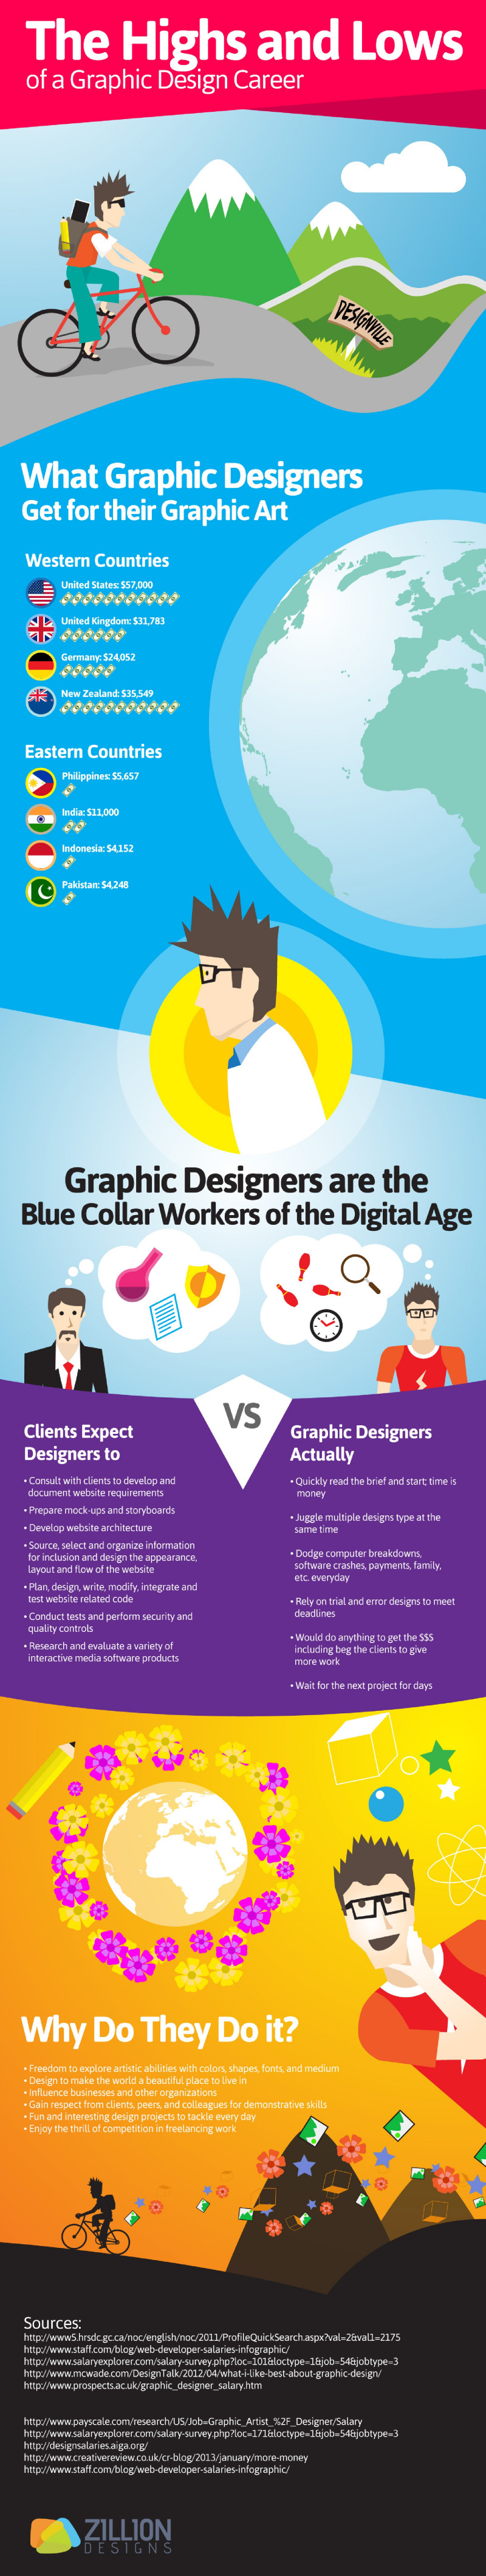 The Highs and Lows of a Graphic Design Career